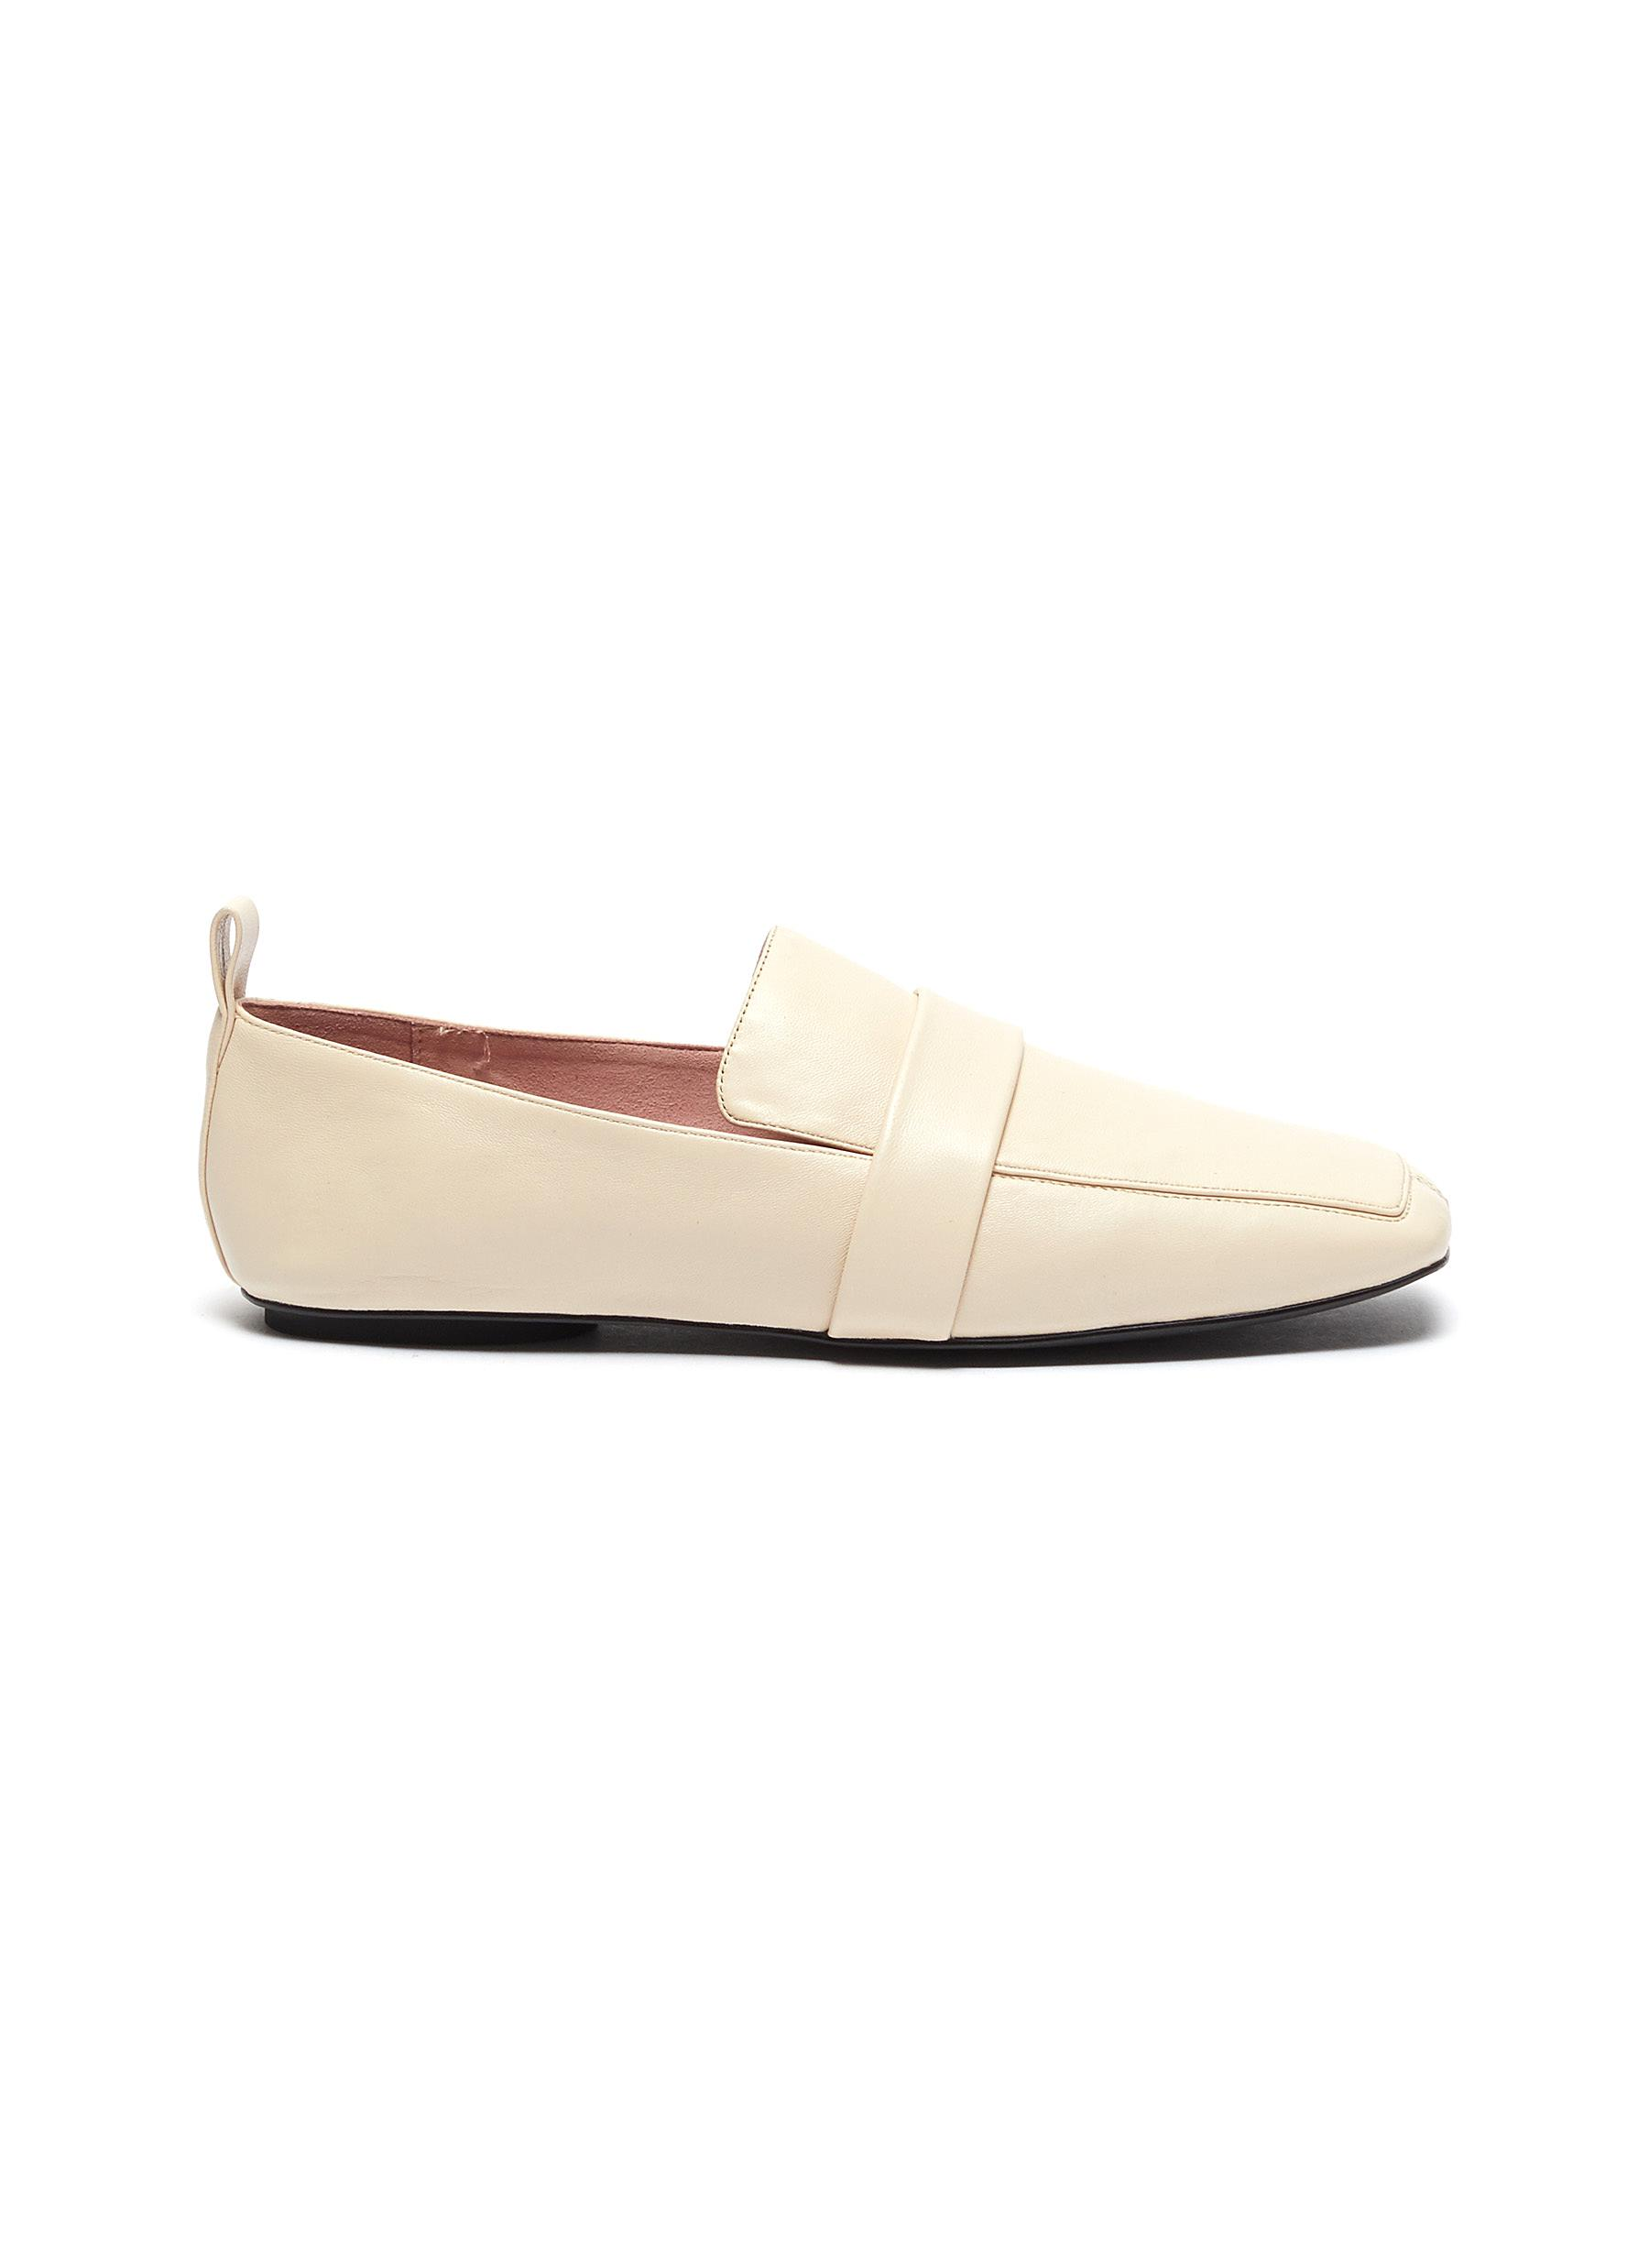 Adam leather loafers by Pedder Red